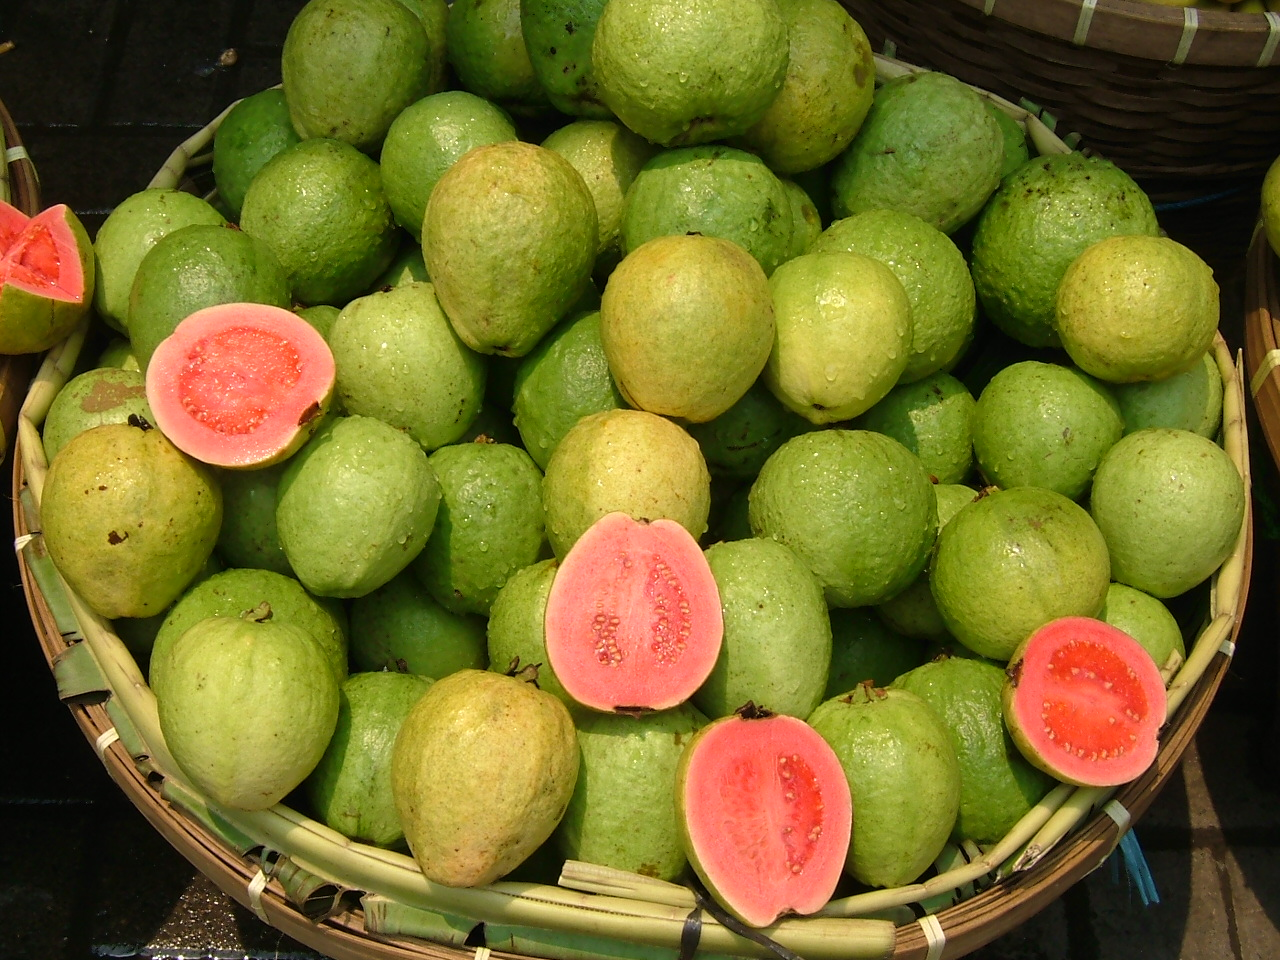 Guava Fruits Images Free Download